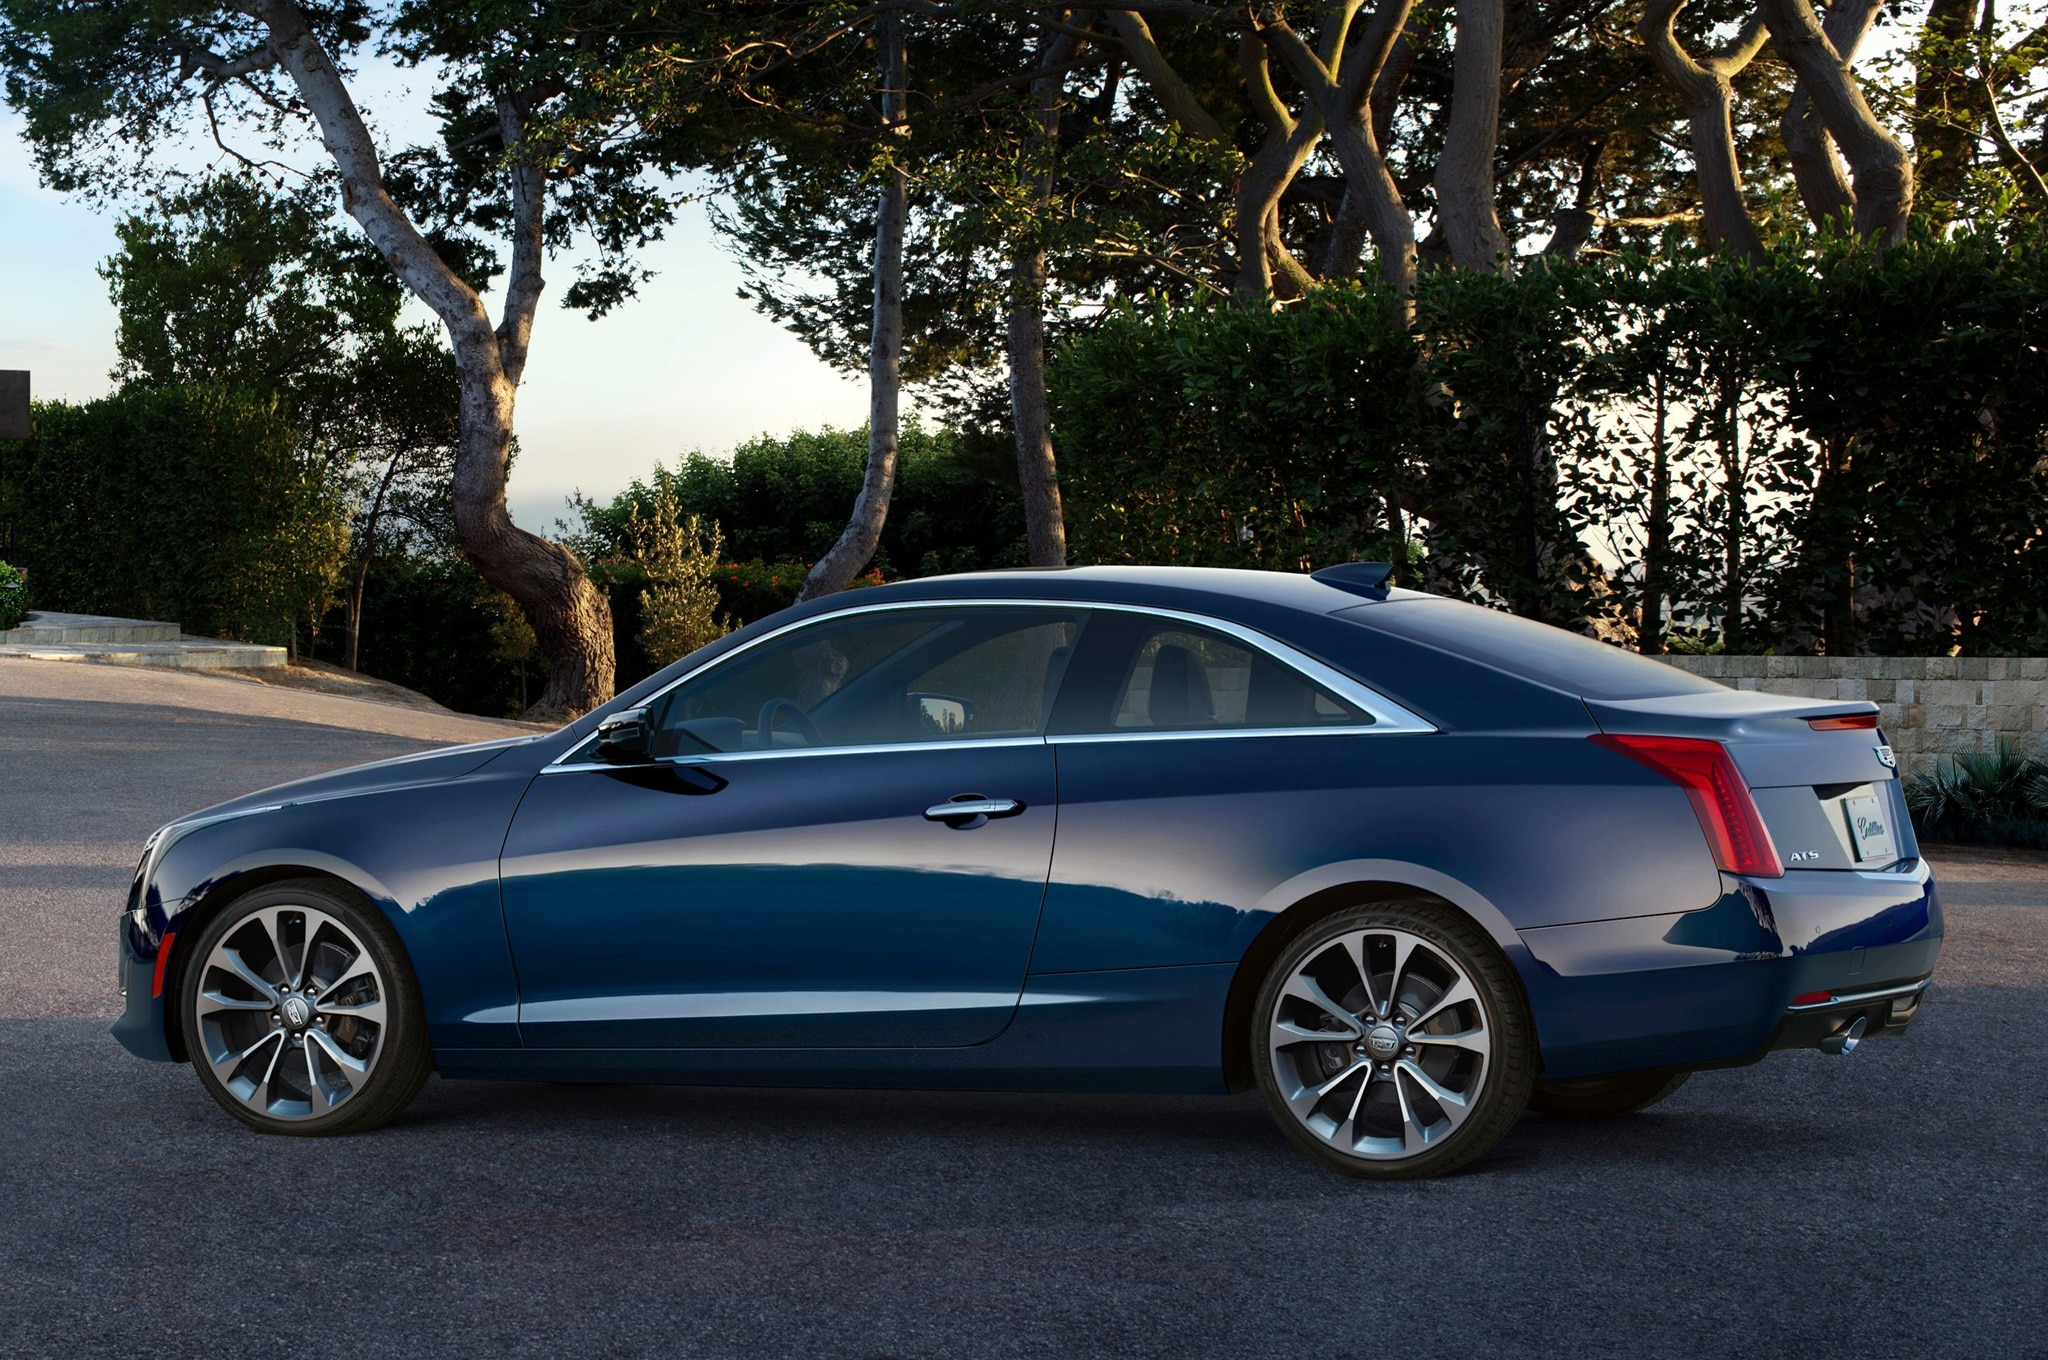 2015 Cadillac ATS Coupe Priced at $38,990